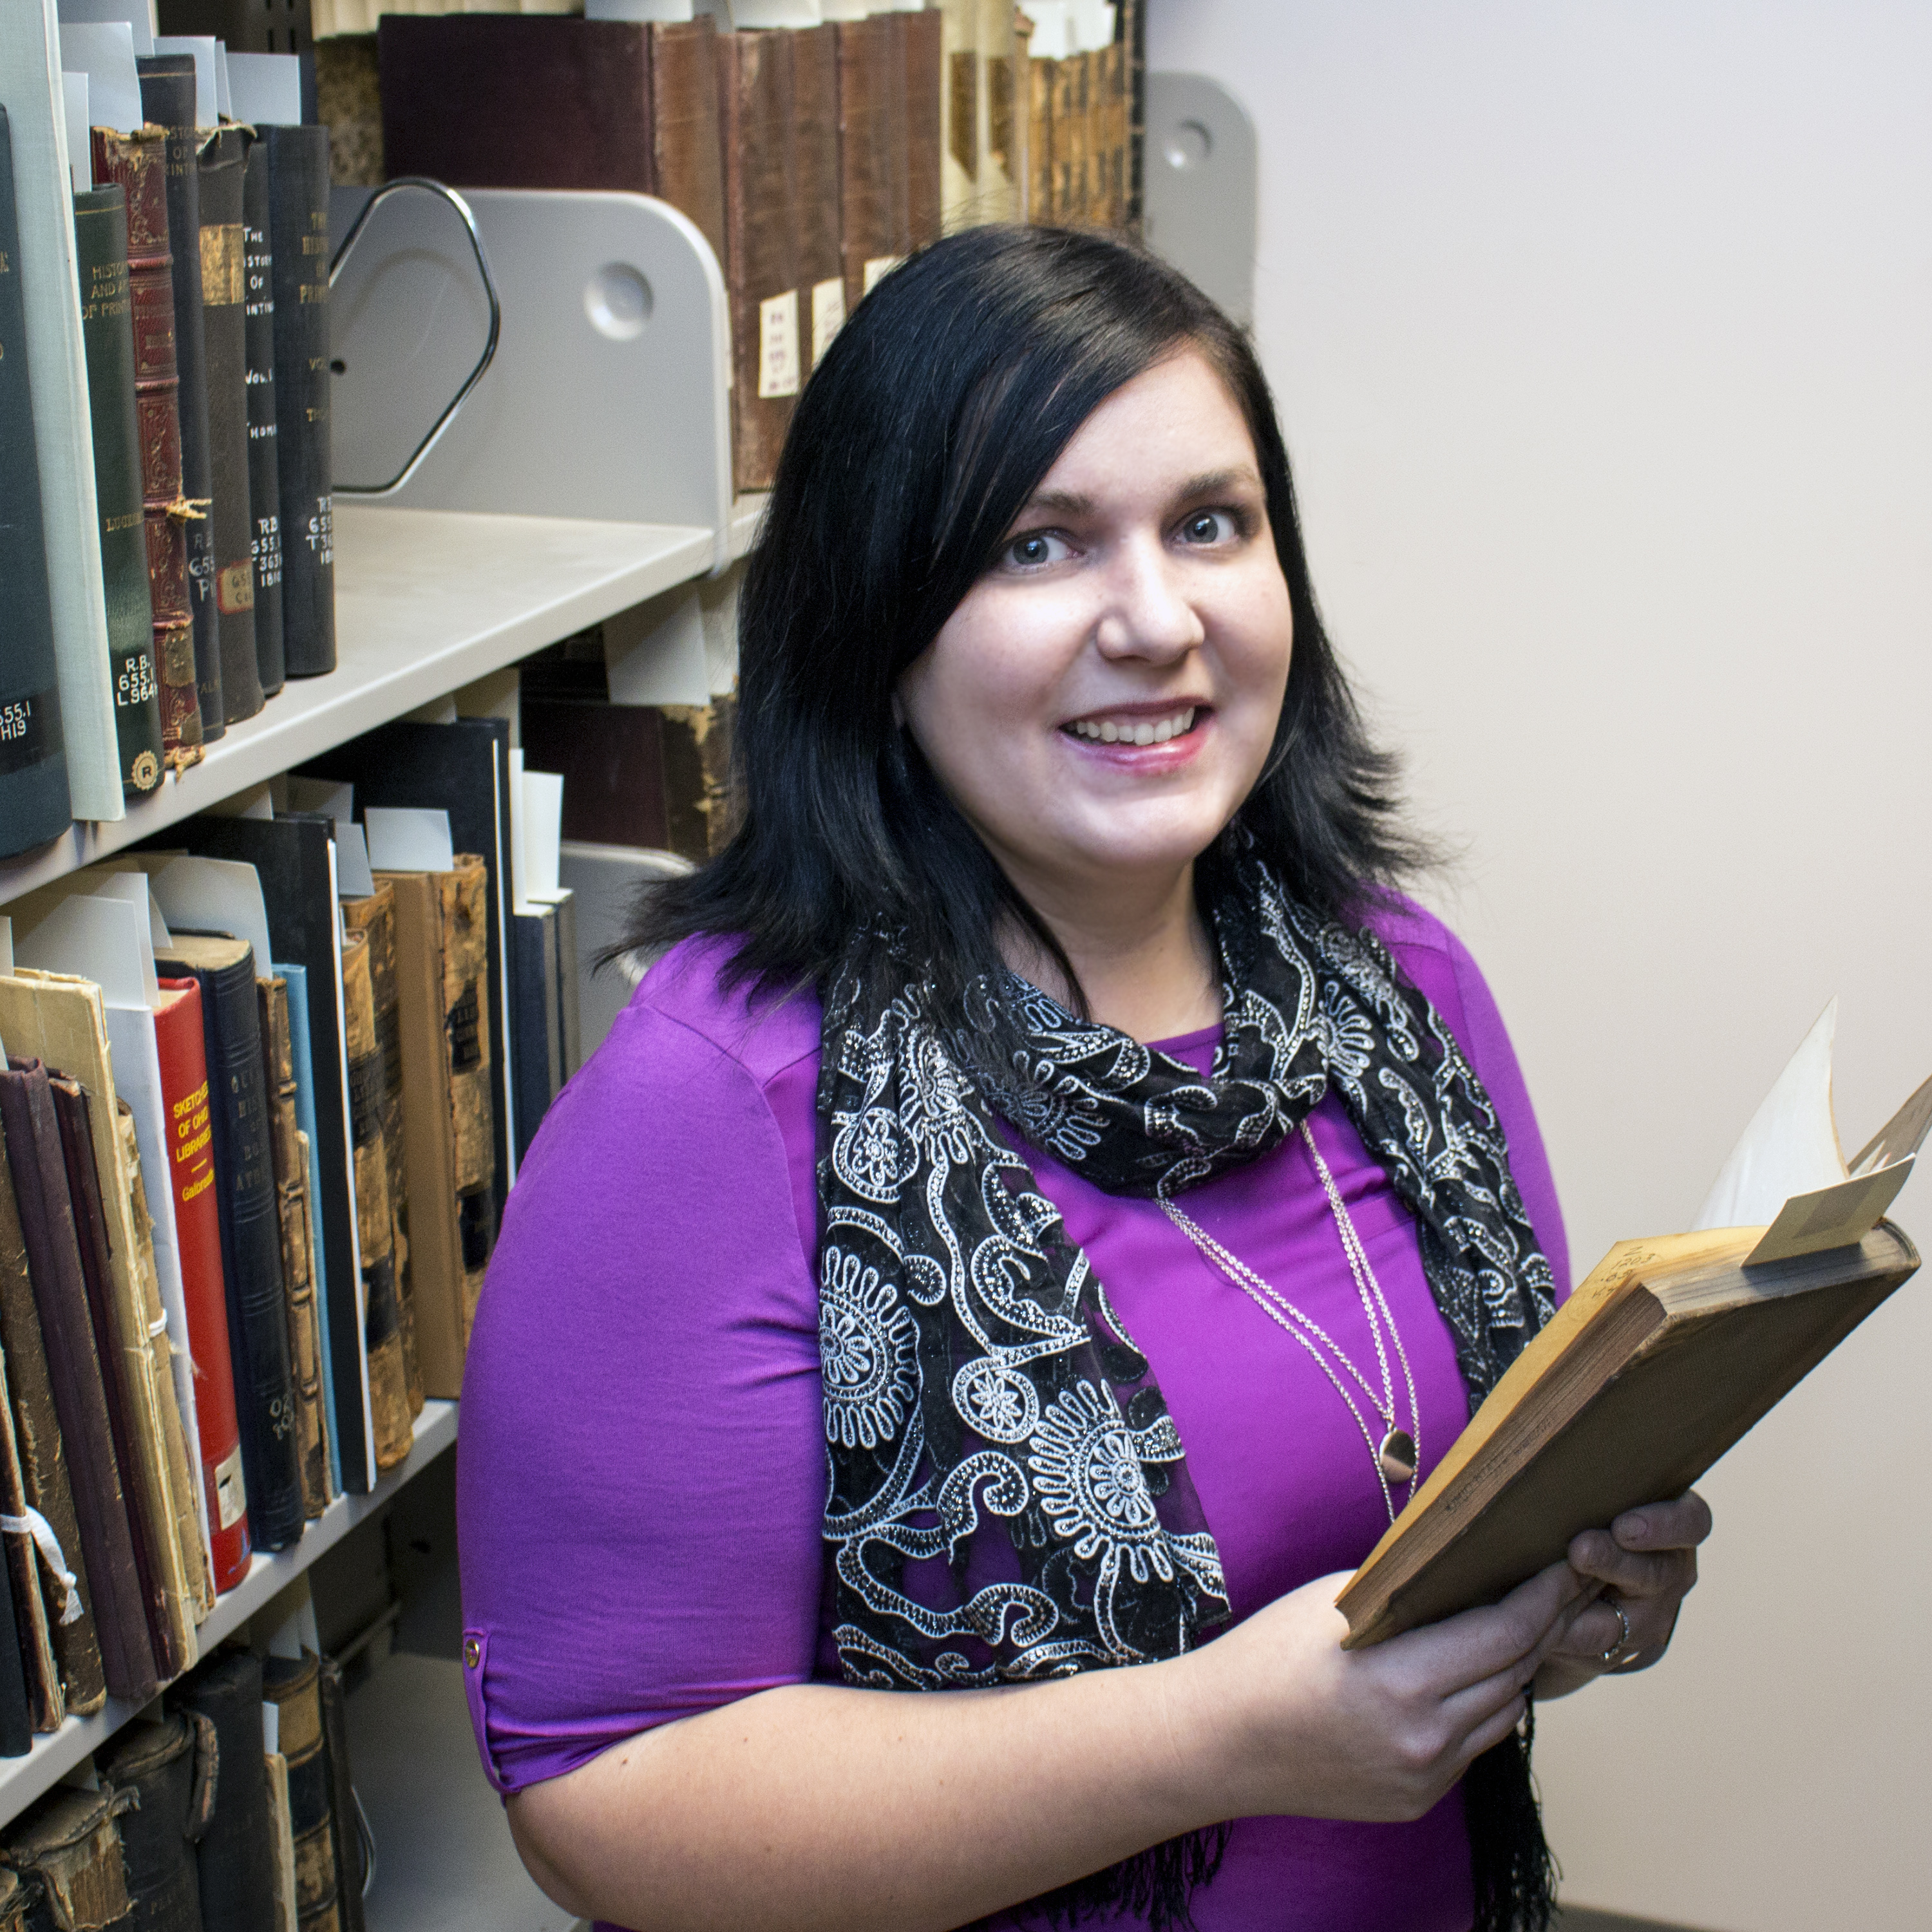 Penelope Shumaker in the State Library Special Collections Room